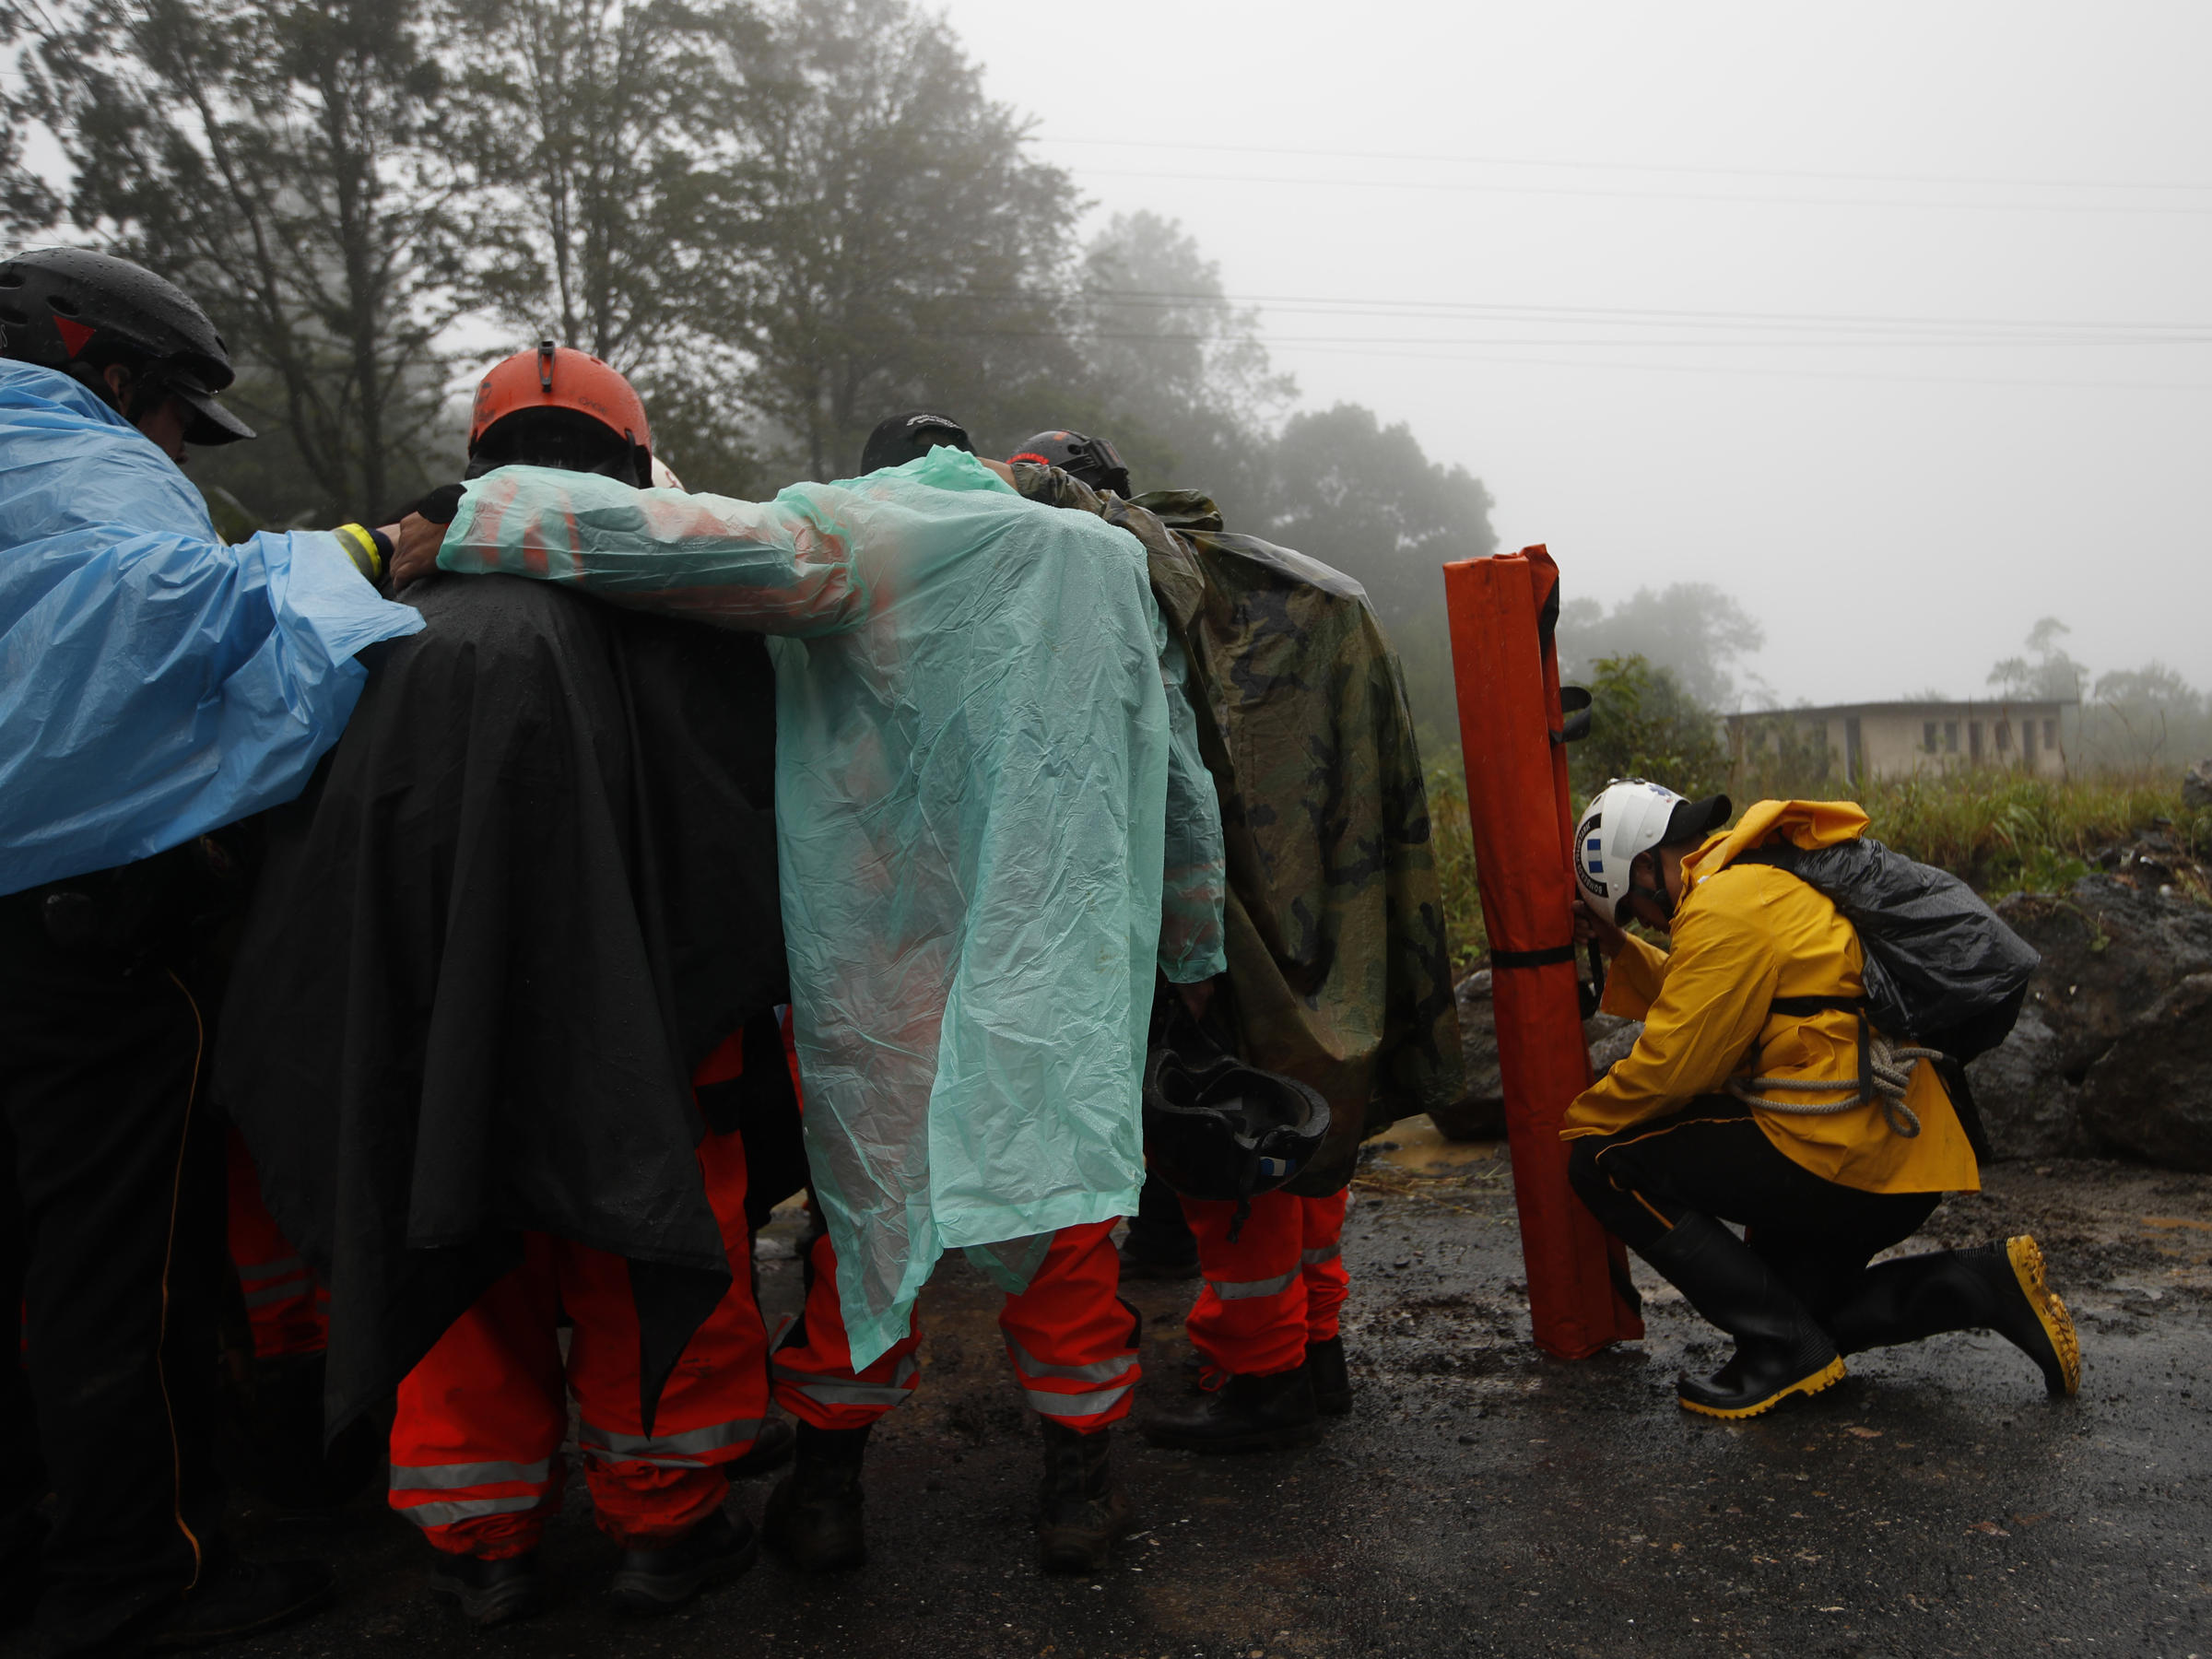 Volunteer firefighters huddle in prayer before beginning a search and rescue operation Nov. 7 in San Cristóbal Verapaz Guatemala in the aftermath of Hurricane Eta